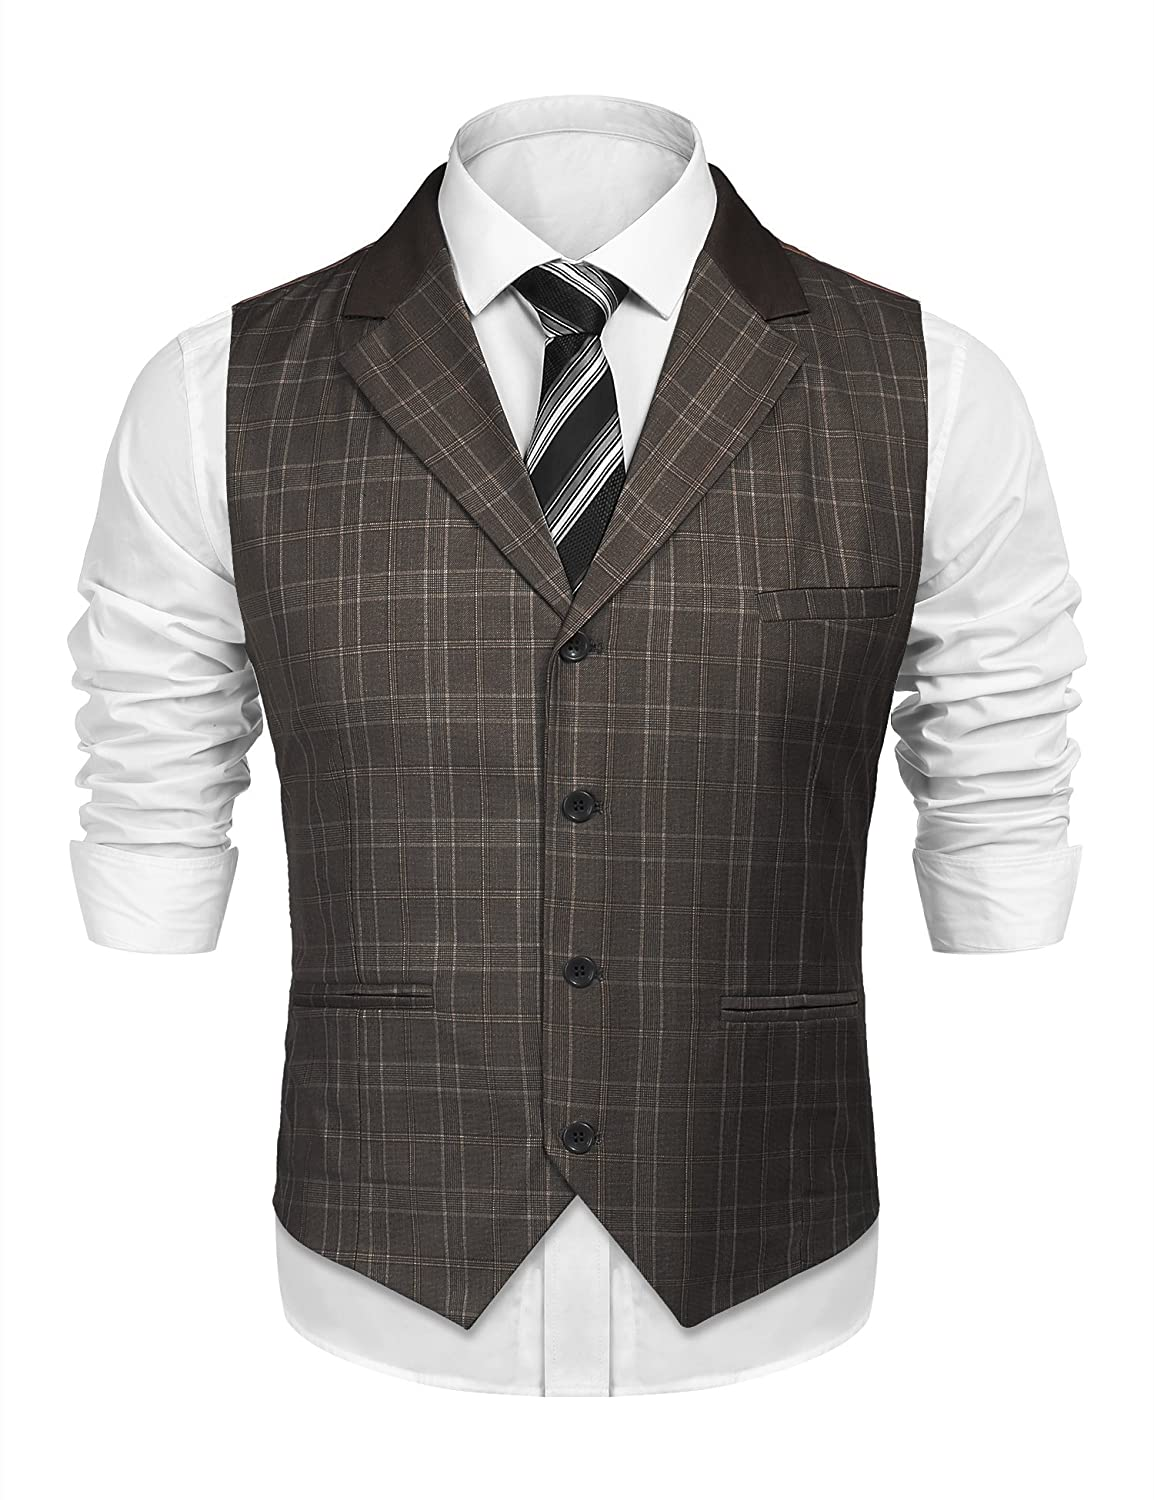 c6d4d1e8ca7 80% Polyester   20% Viscose DESIGN  This waistcoat is casual but decent. So  it is your great choice to wear for business